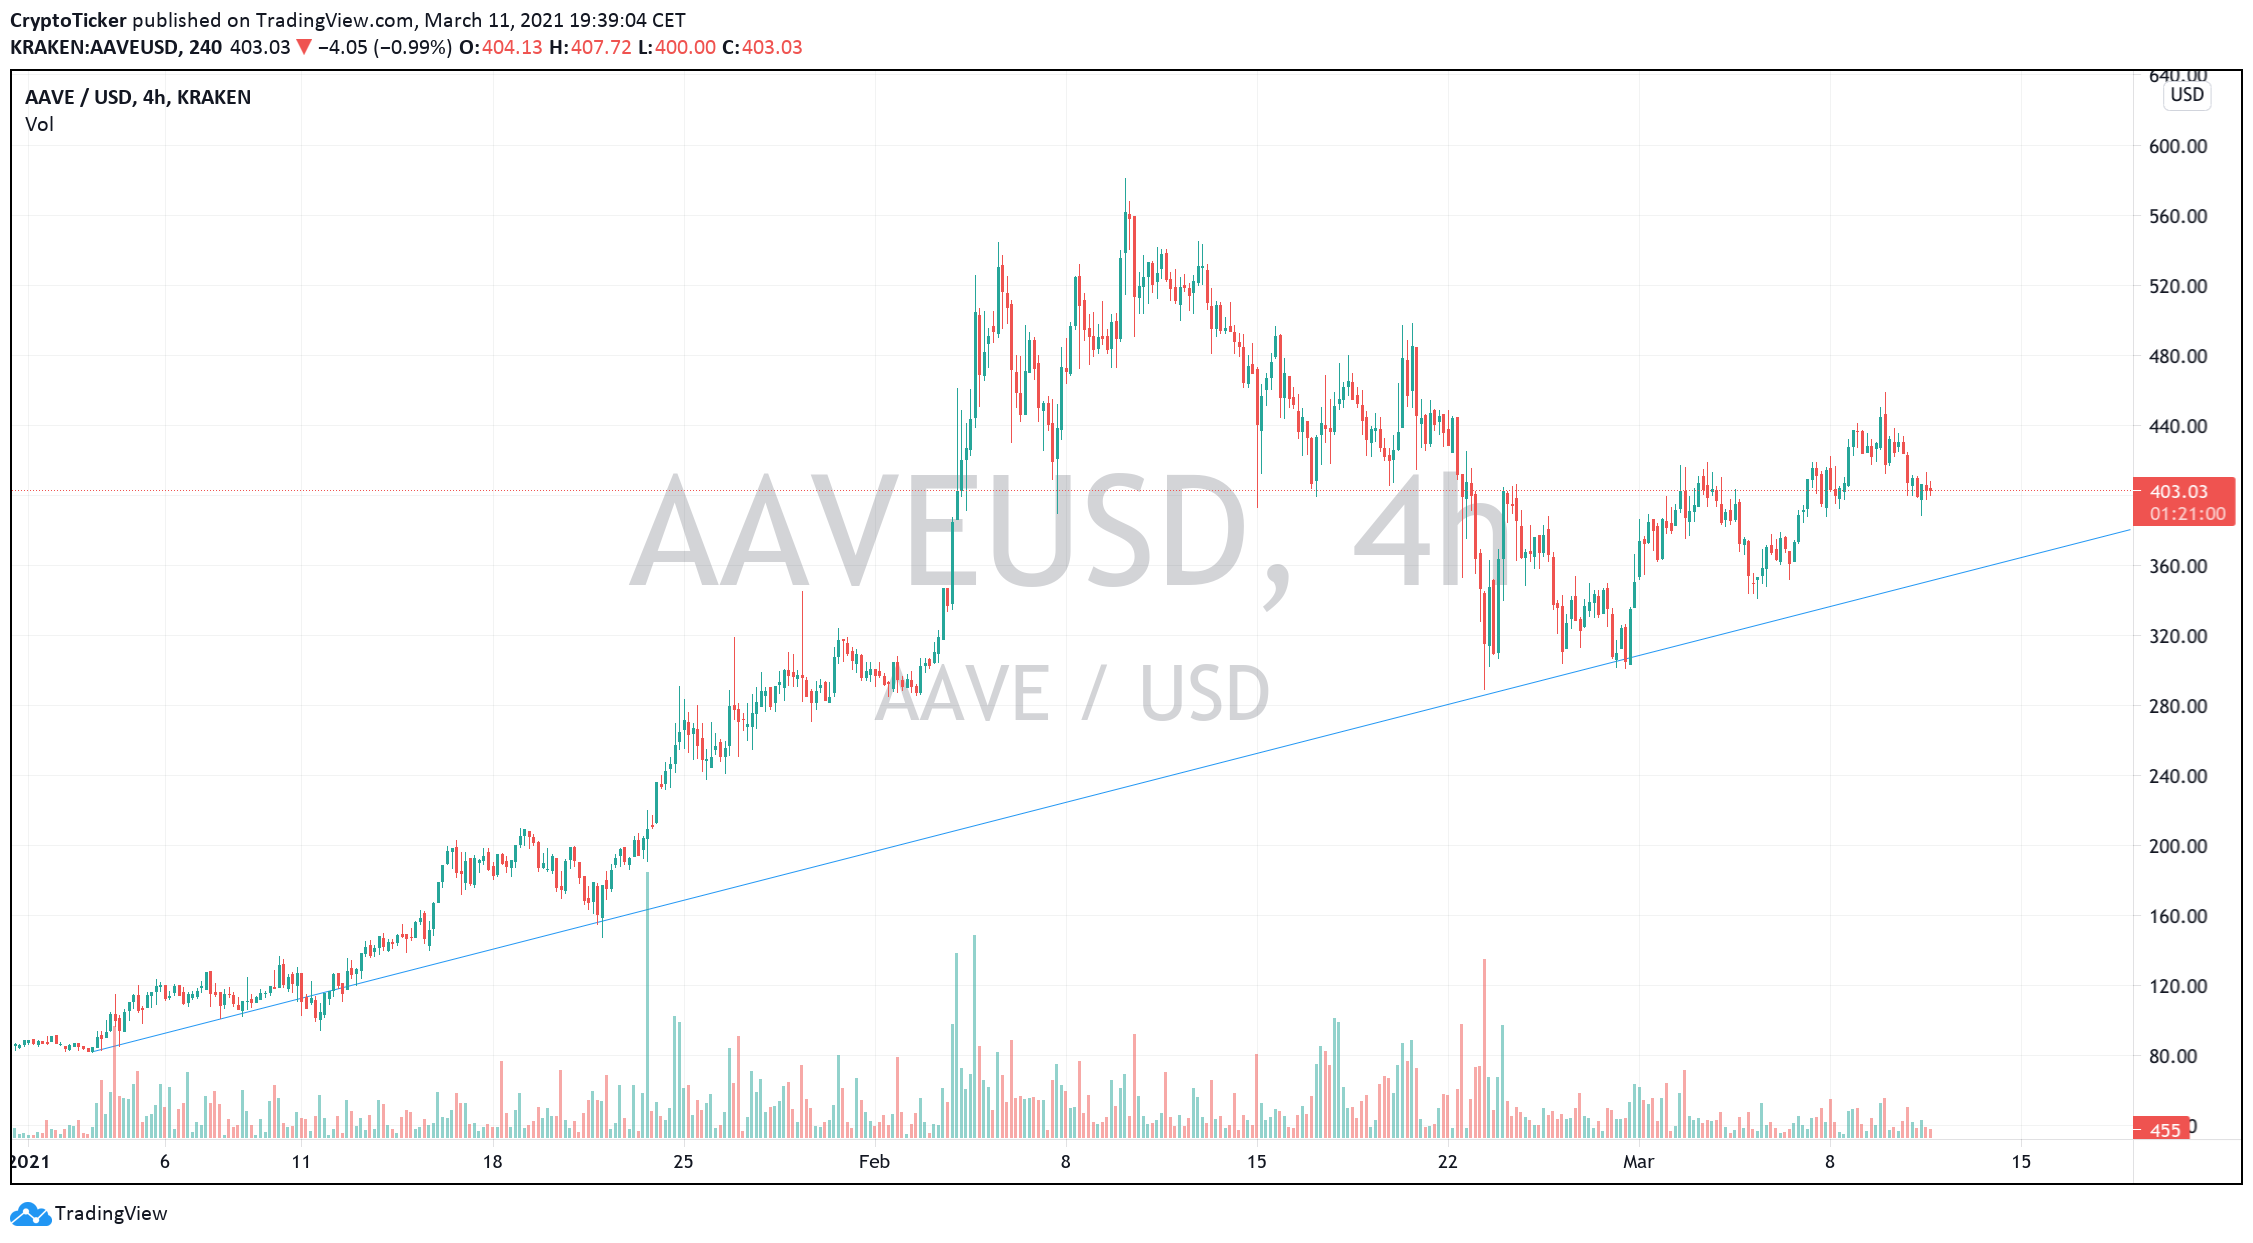 AAVE/USD 4-hour chart showing Aave's strong uptrend